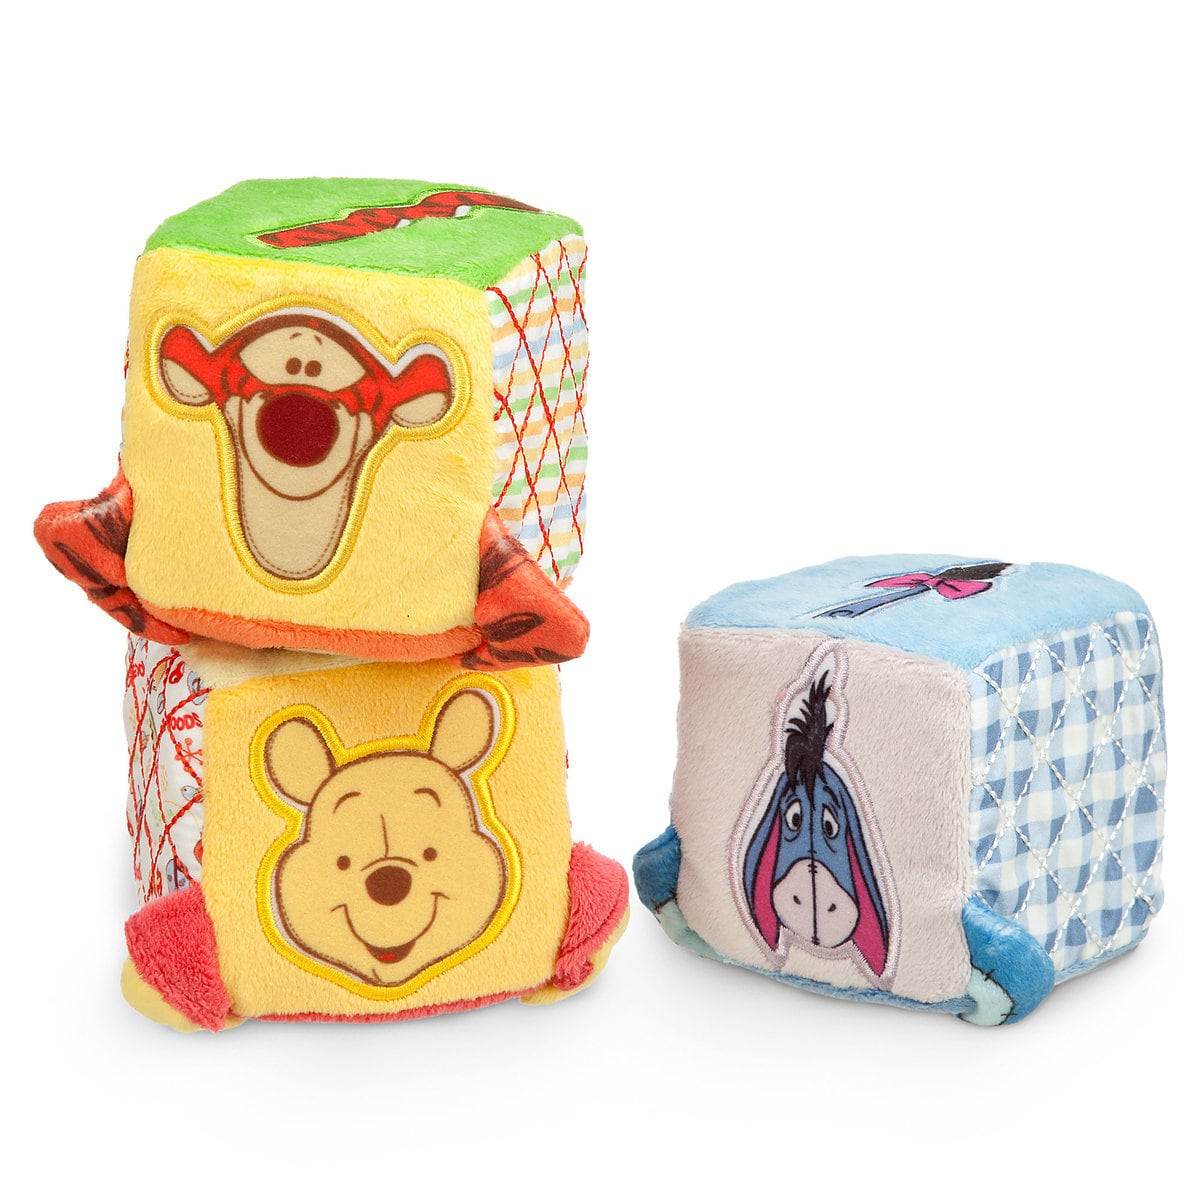 Top 25 Disney Gift Ideas for Babies featured by top US Disney blogger, Marcie and the Mouse: Winnie the Pooh blocks for babies